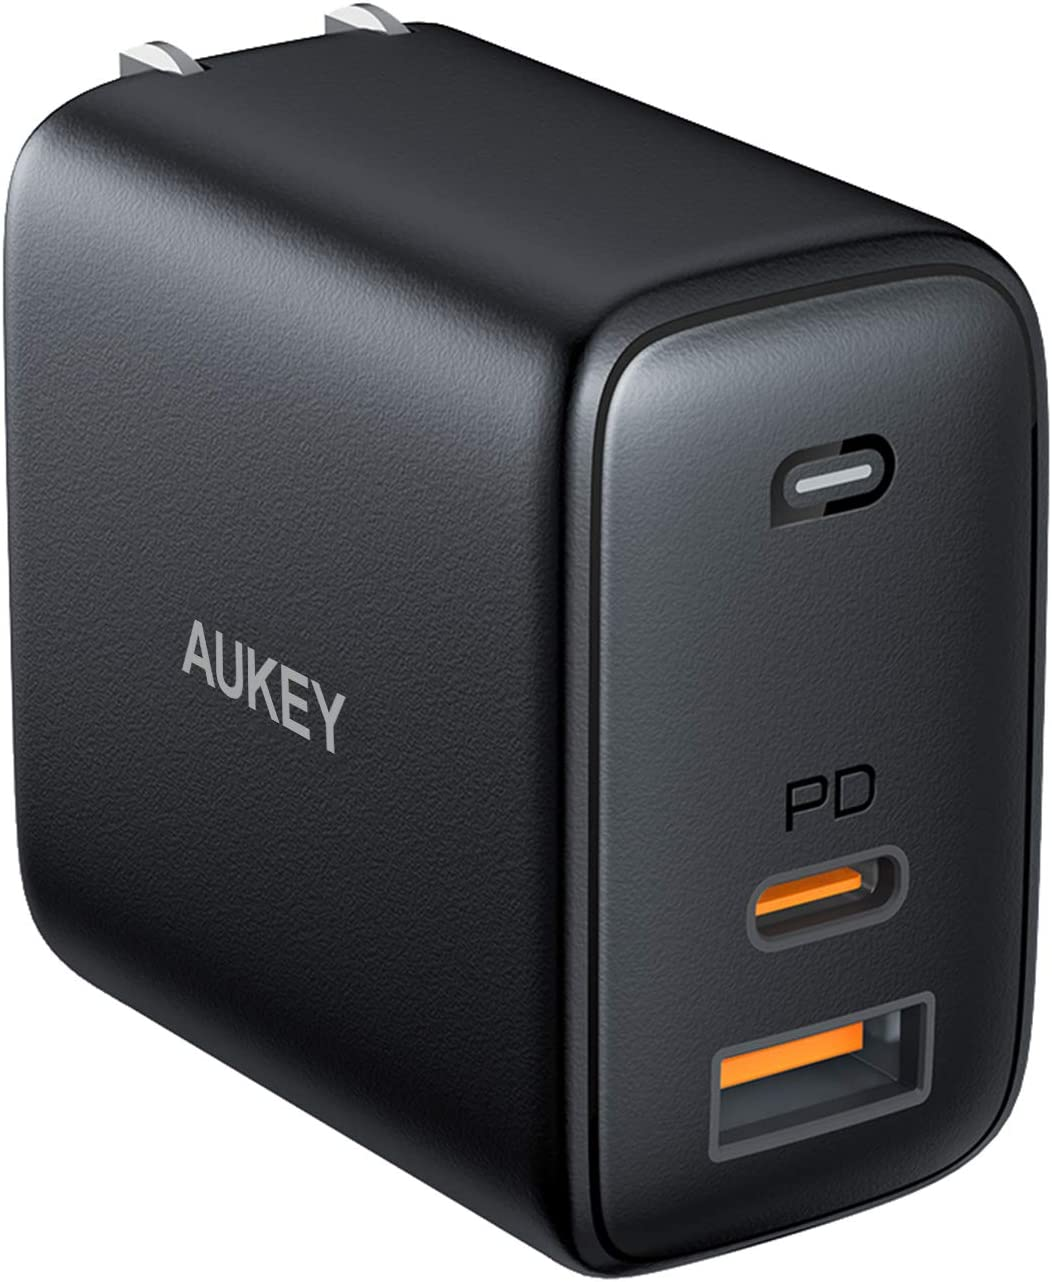 USB C Charger AUKEY Omnia 65W Fast Charger (Dual Port USB C PD 3.0 Plus USB A) with GaNFast Technology and Dynamic Detect PD Charger Wall Charger for iPhone 11 Pro Max, Google Pixel 3 XL, LG, Samsung